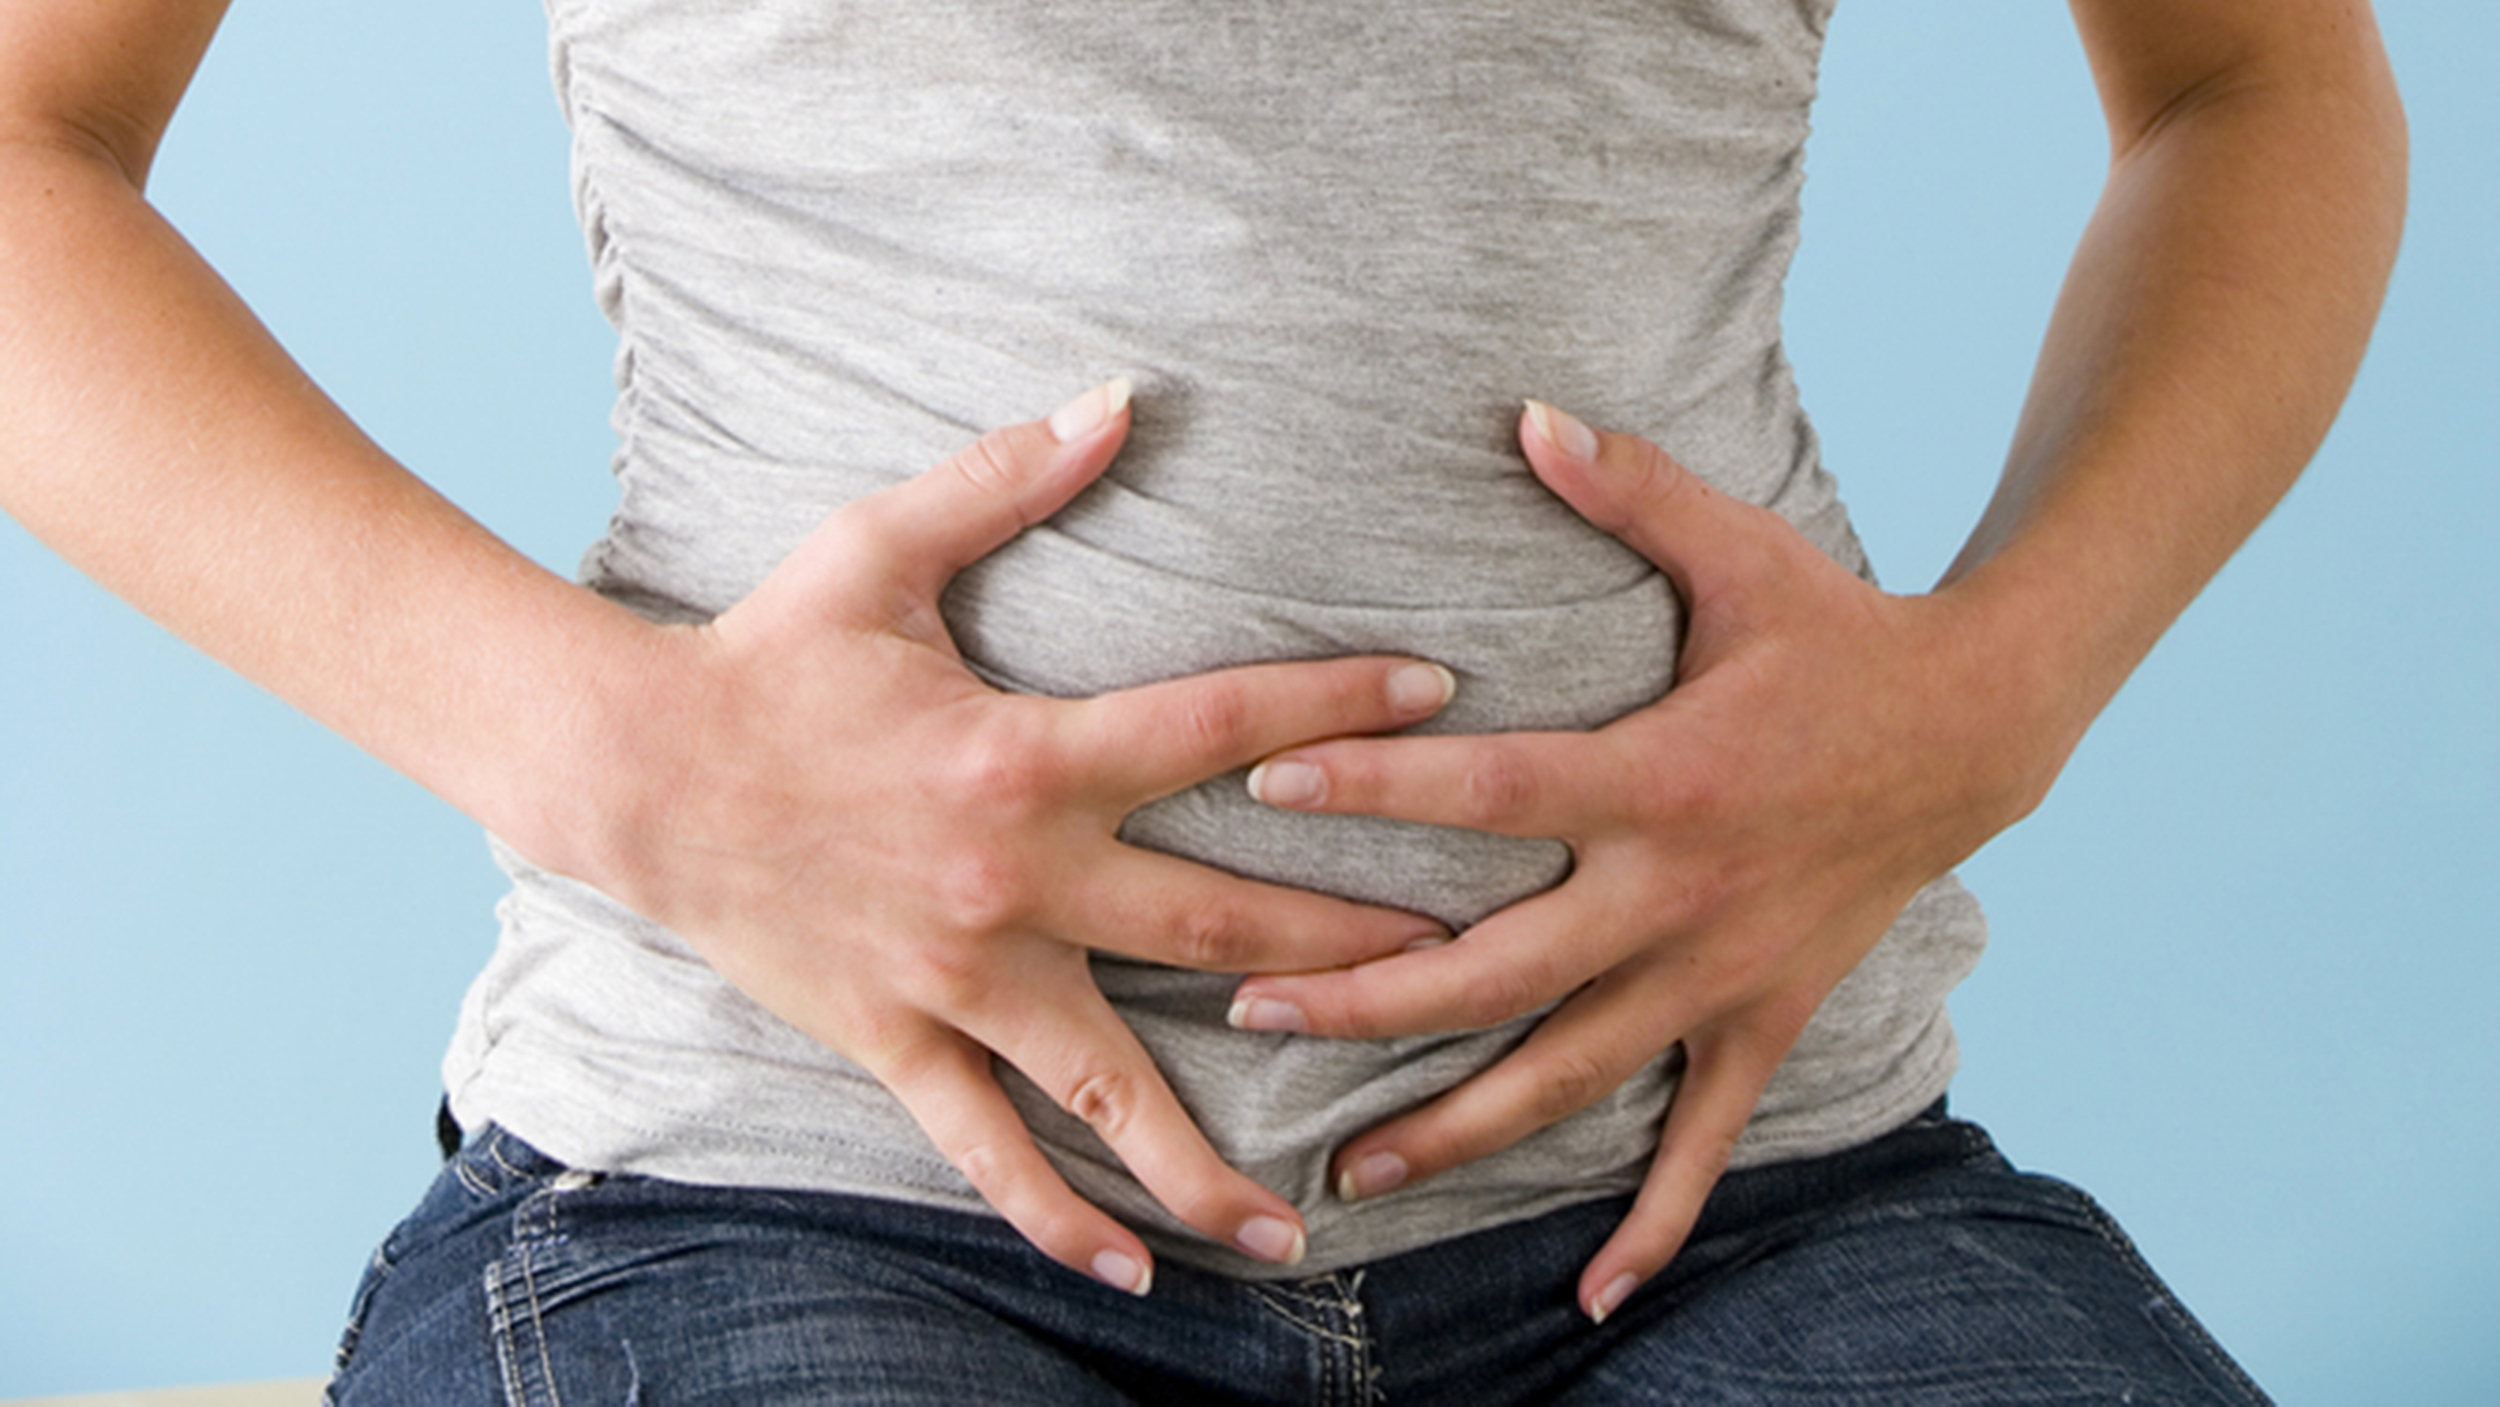 Belly bloat? 10 bad habits to break, from chewing gum to eating fast